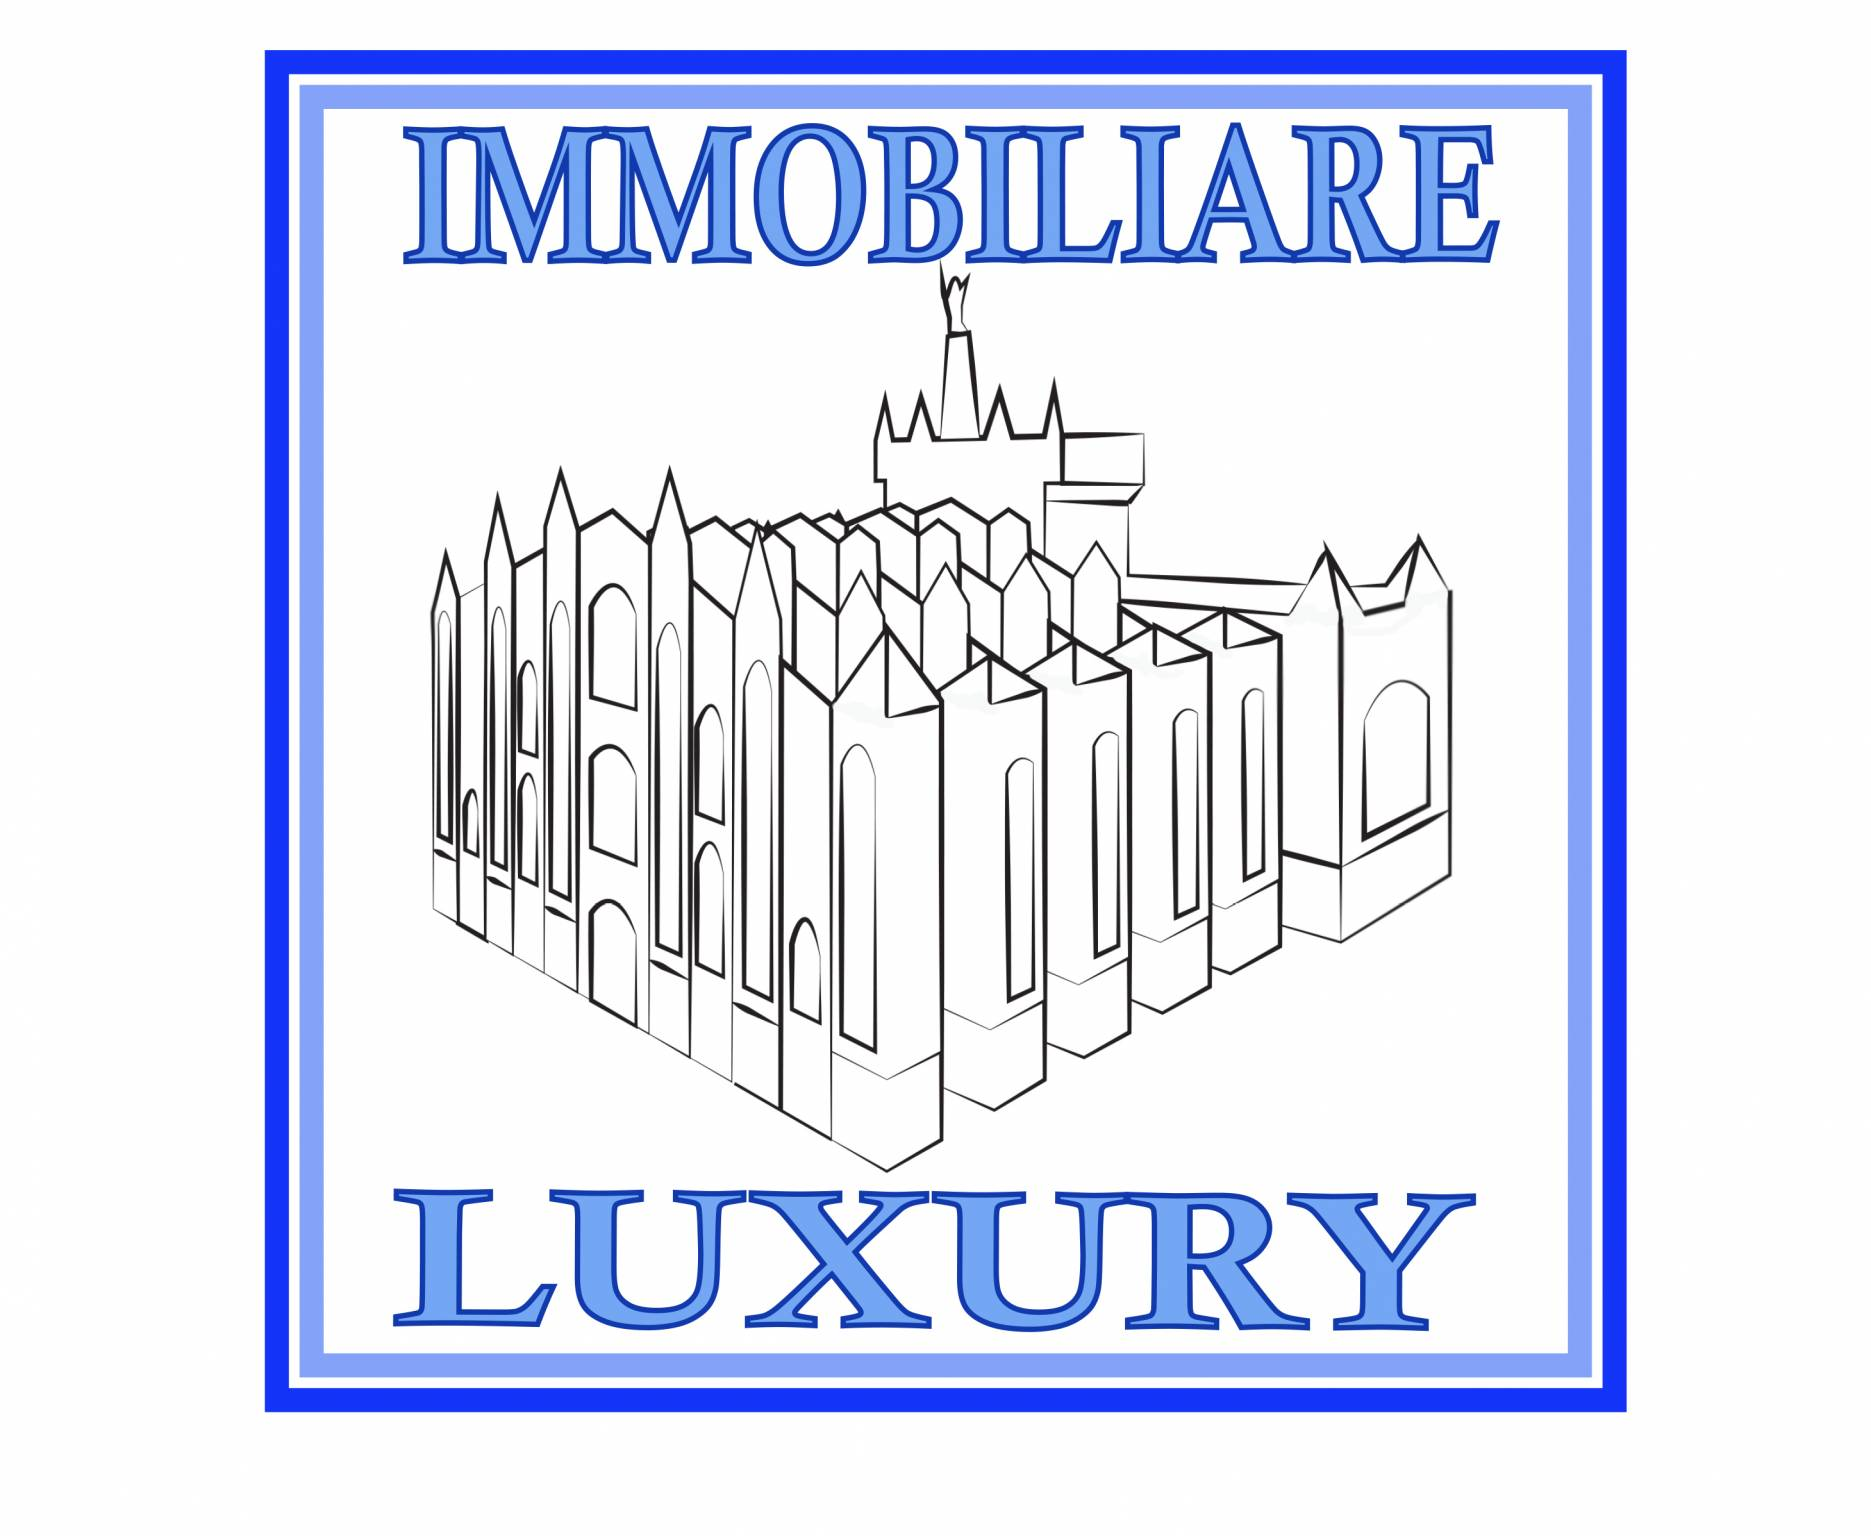 Immobiliare luxury